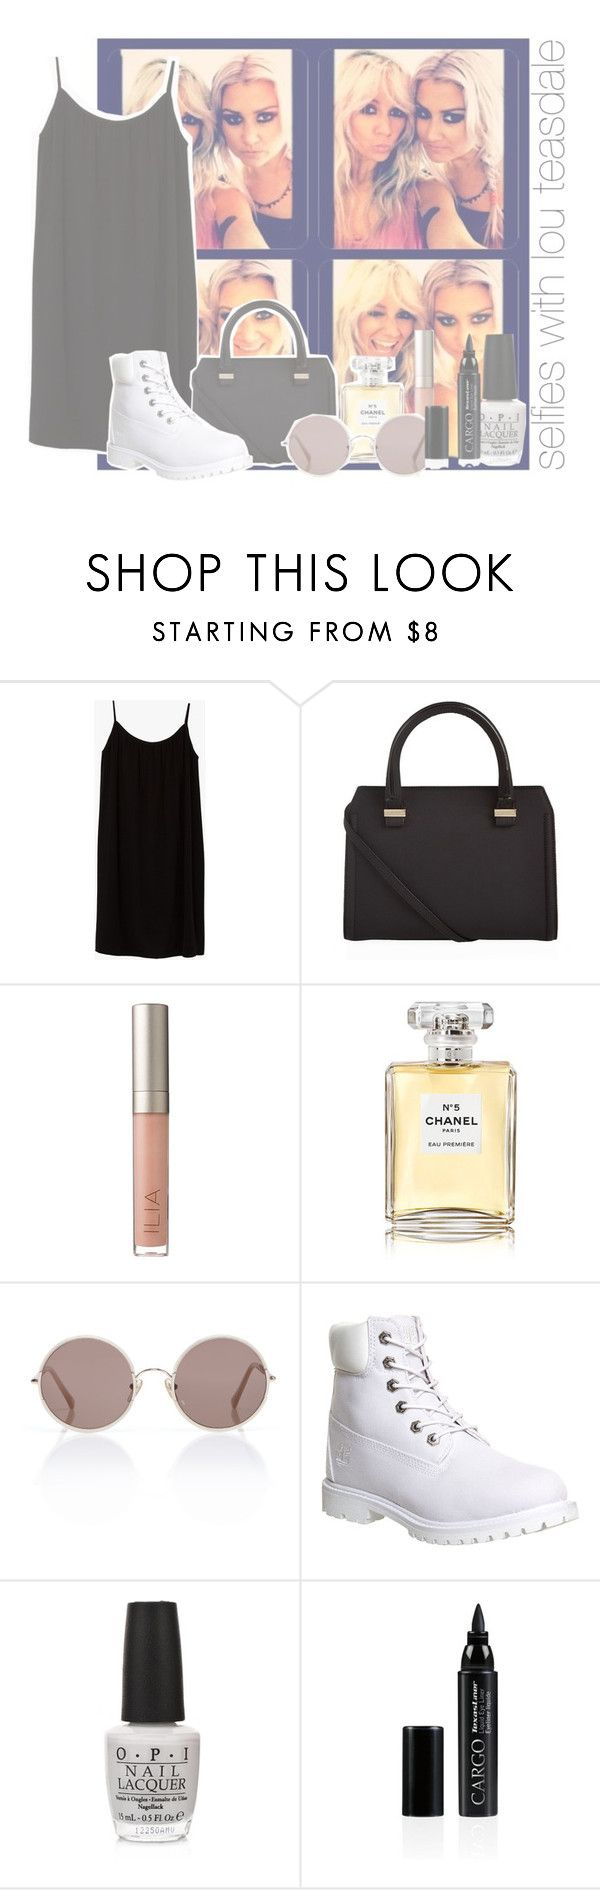 """selfies with lou teasdale"" by rosa-brooks ❤ liked on Polyvore featuring Azalea, Victoria Beckham, Ilia, Chanel, Sunday Somewhere, Timberland, OPI and CARGO"